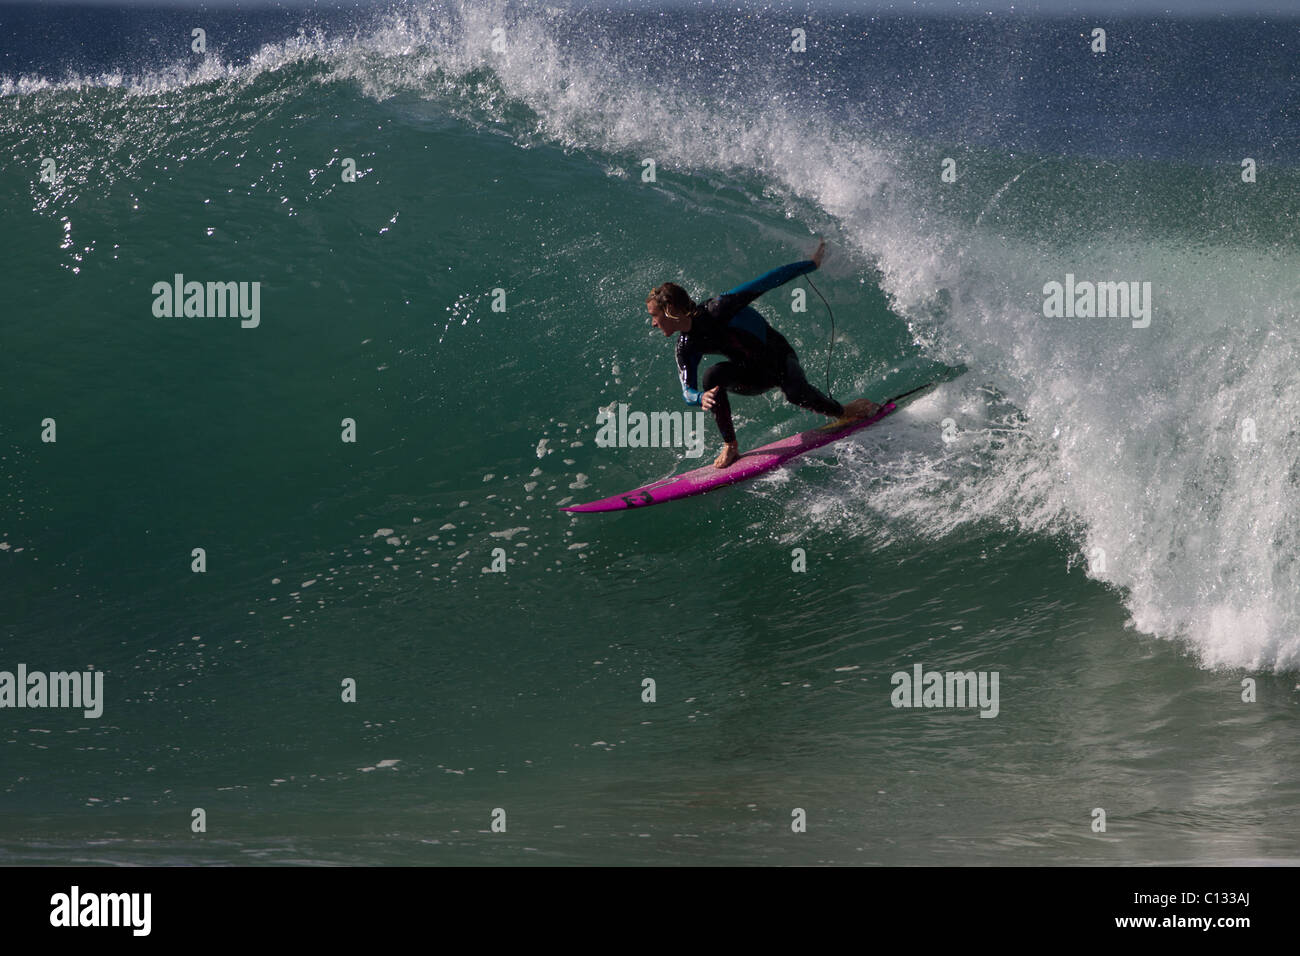 Backside Tube Ridng at Supers, Jeffreys Bay, South Africa - Stock Image